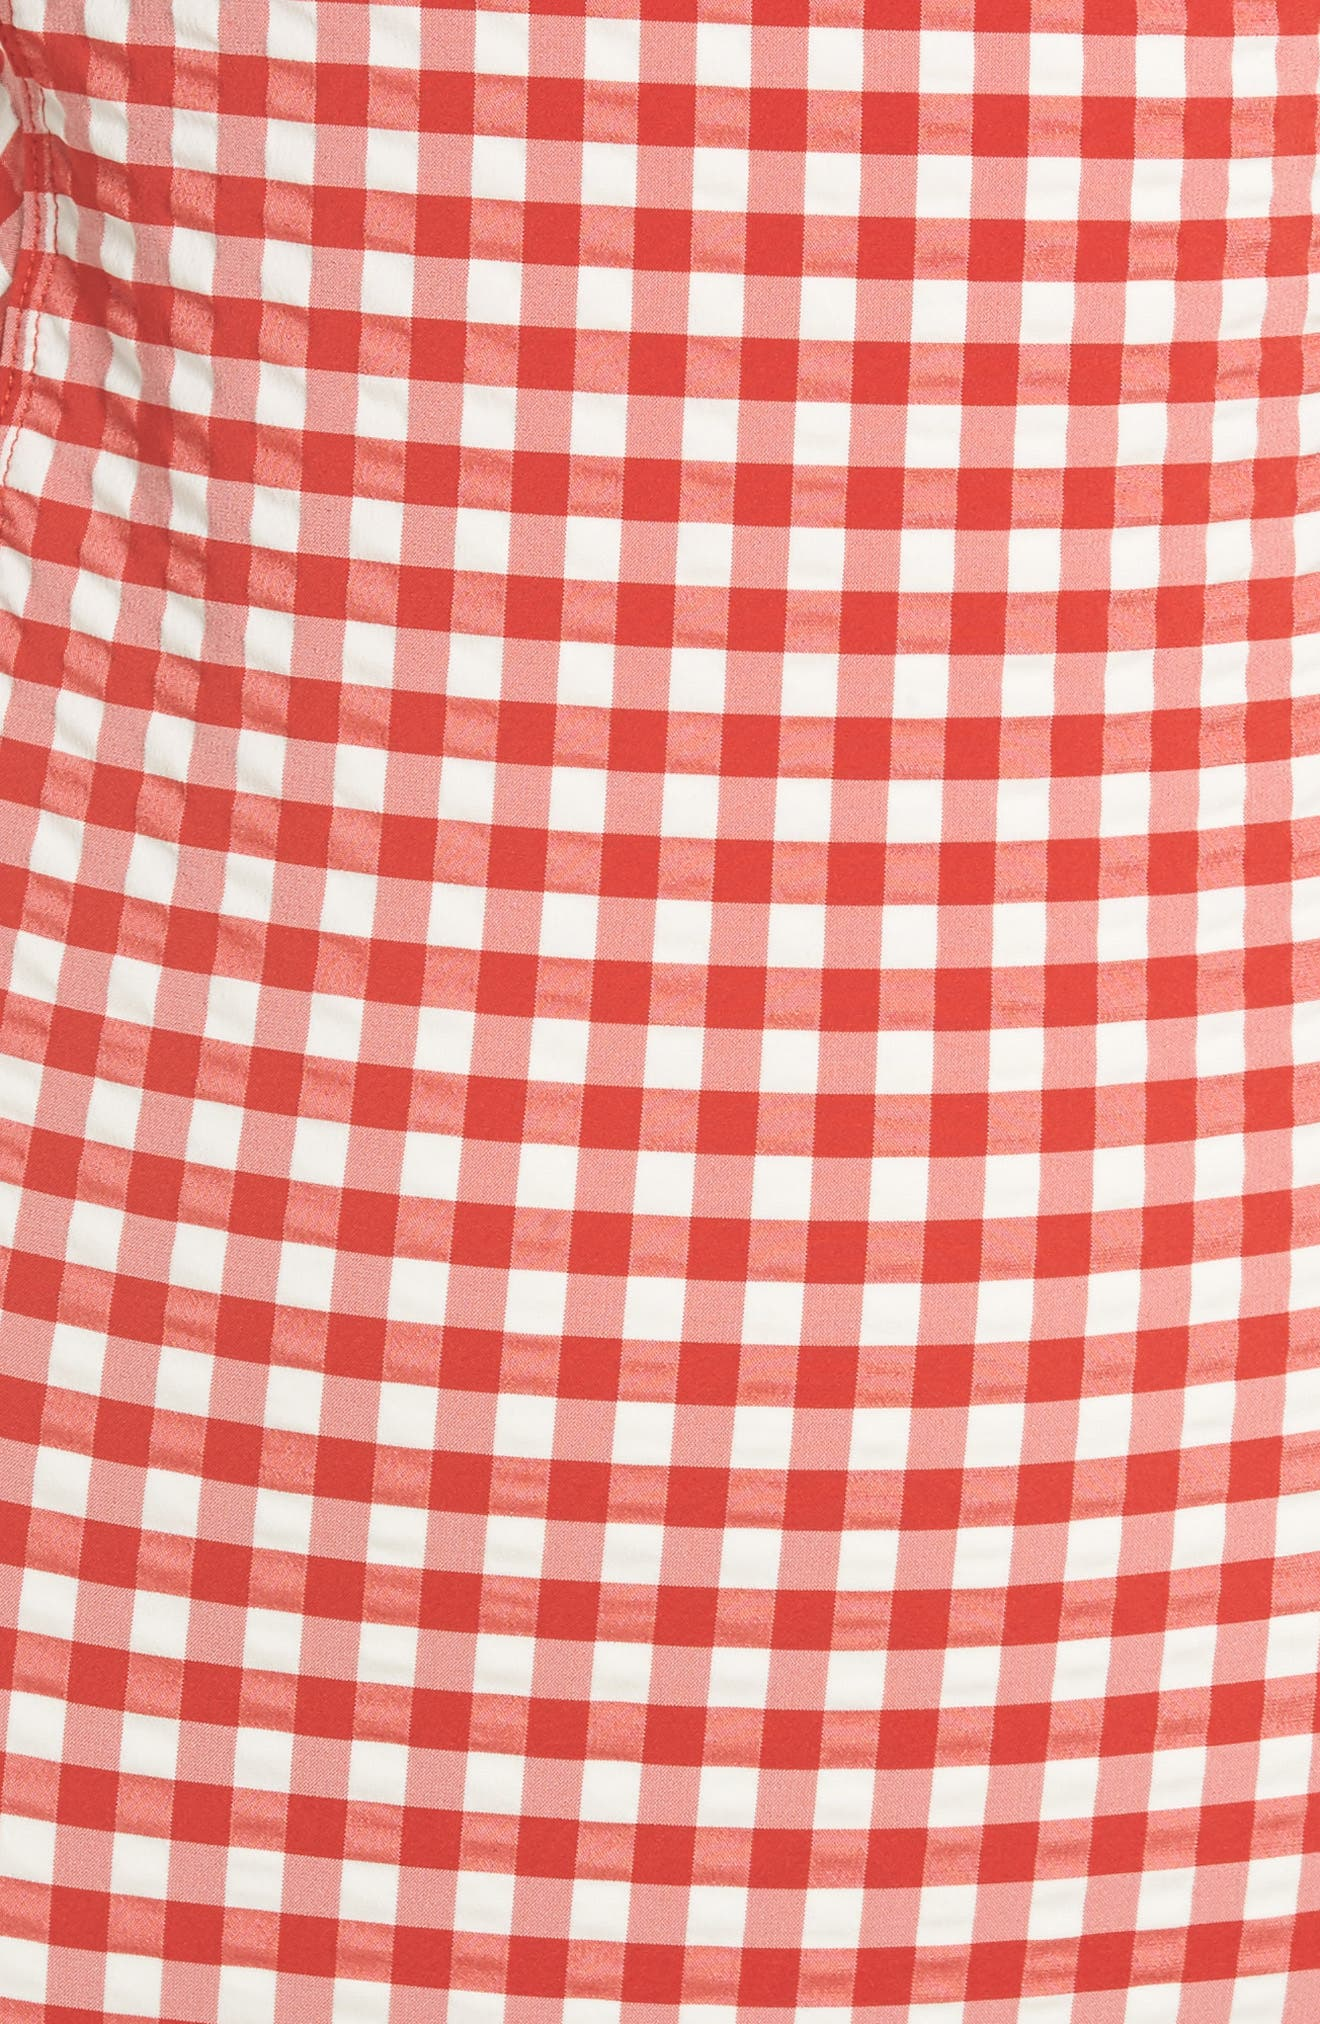 Gingham One-Piece Underwire Swimsuit,                             Alternate thumbnail 5, color,                             634